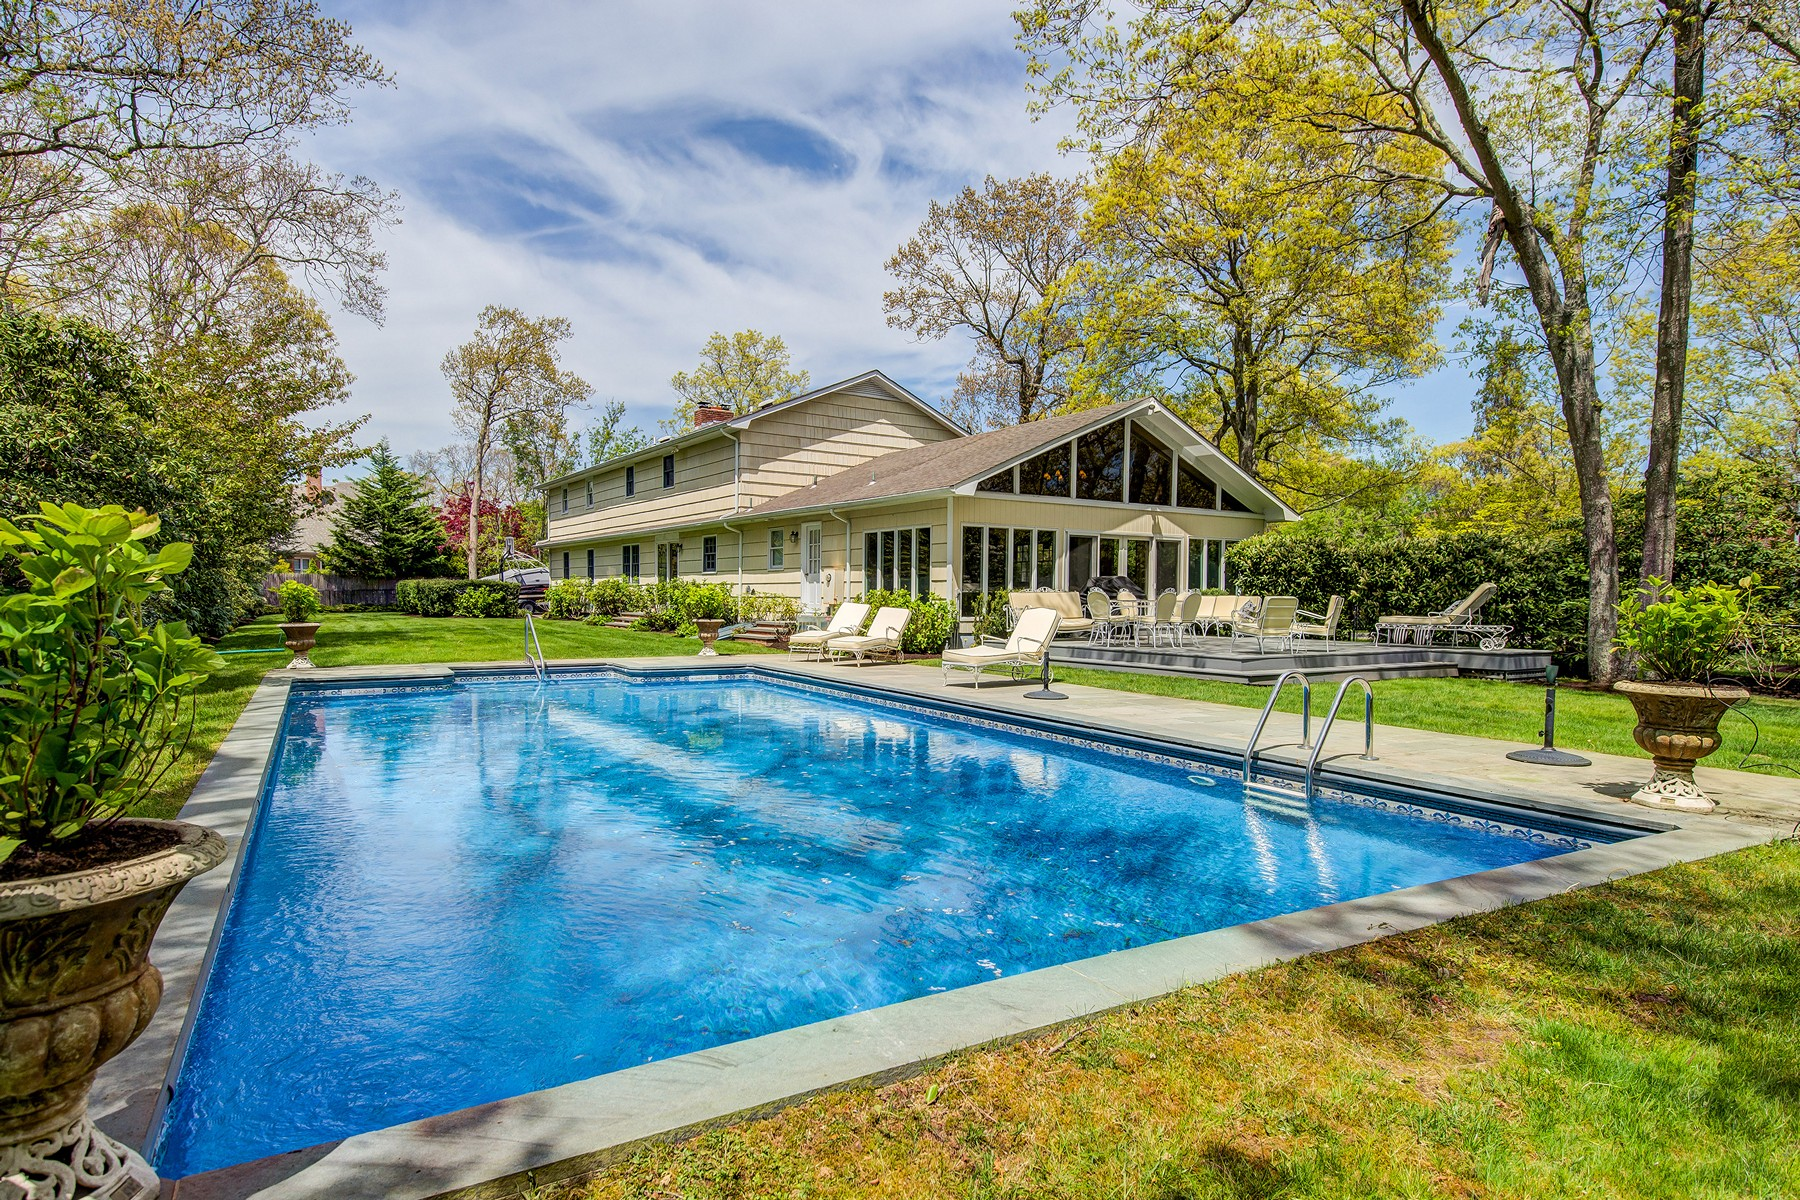 Single Family Home for Active at 77 Griffing Ave Westhampton Beach, New York 11978 United States